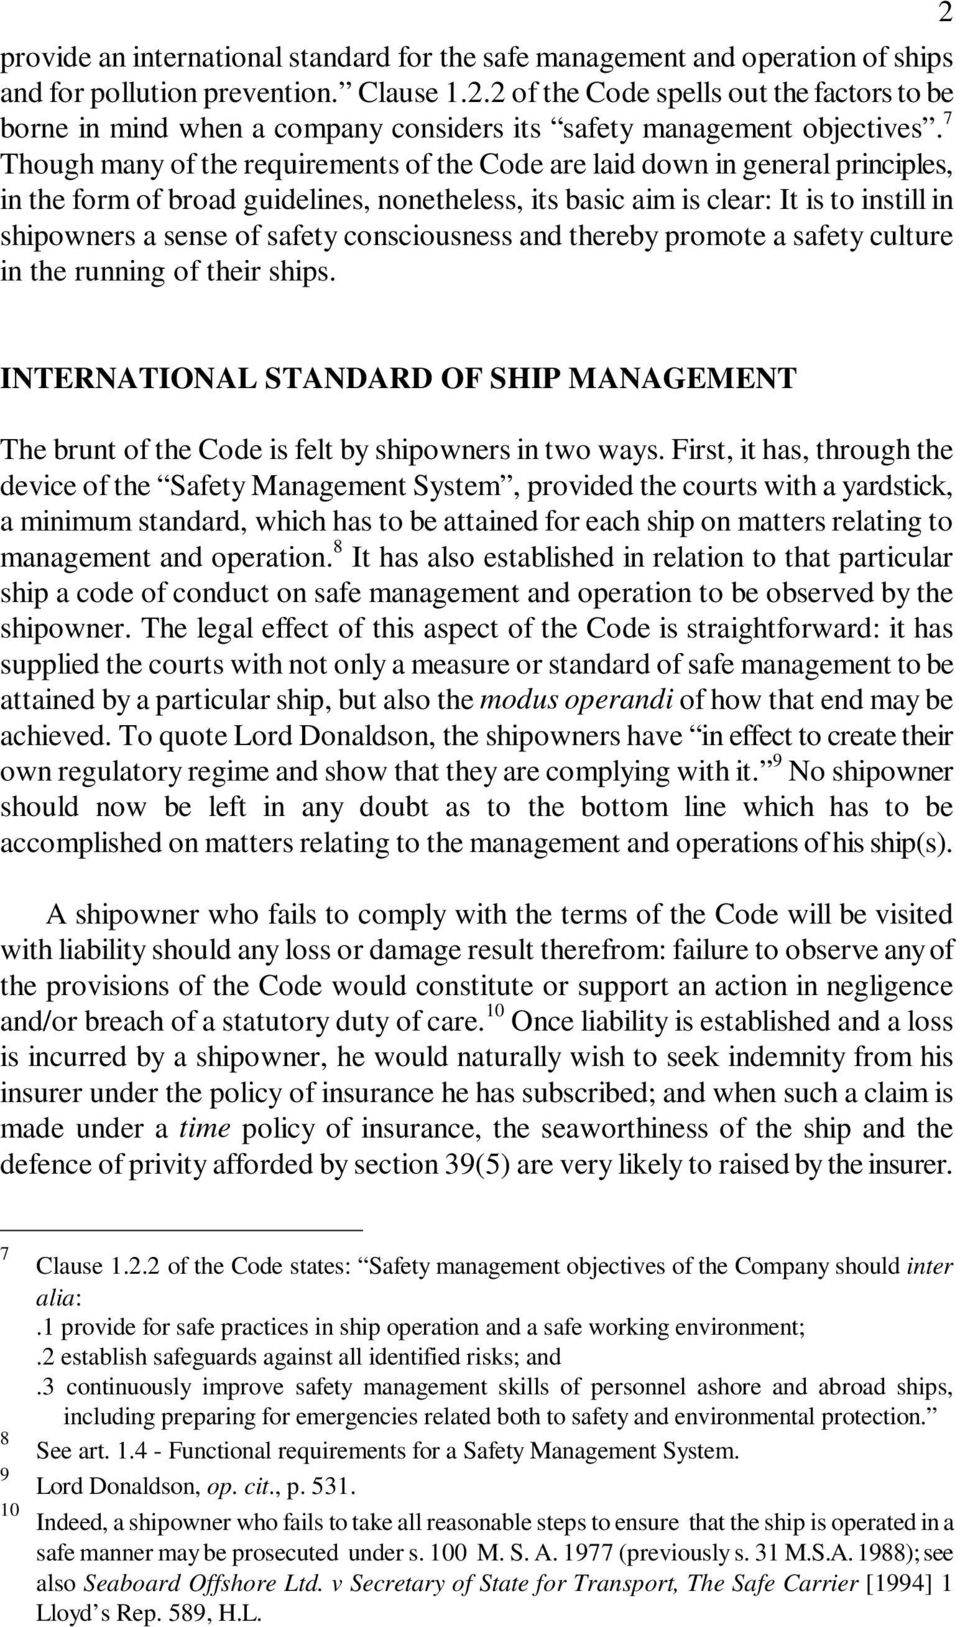 7 Though many of the requirements of the Code are laid down in general principles, in the form of broad guidelines, nonetheless, its basic aim is clear: It is to instill in shipowners a sense of